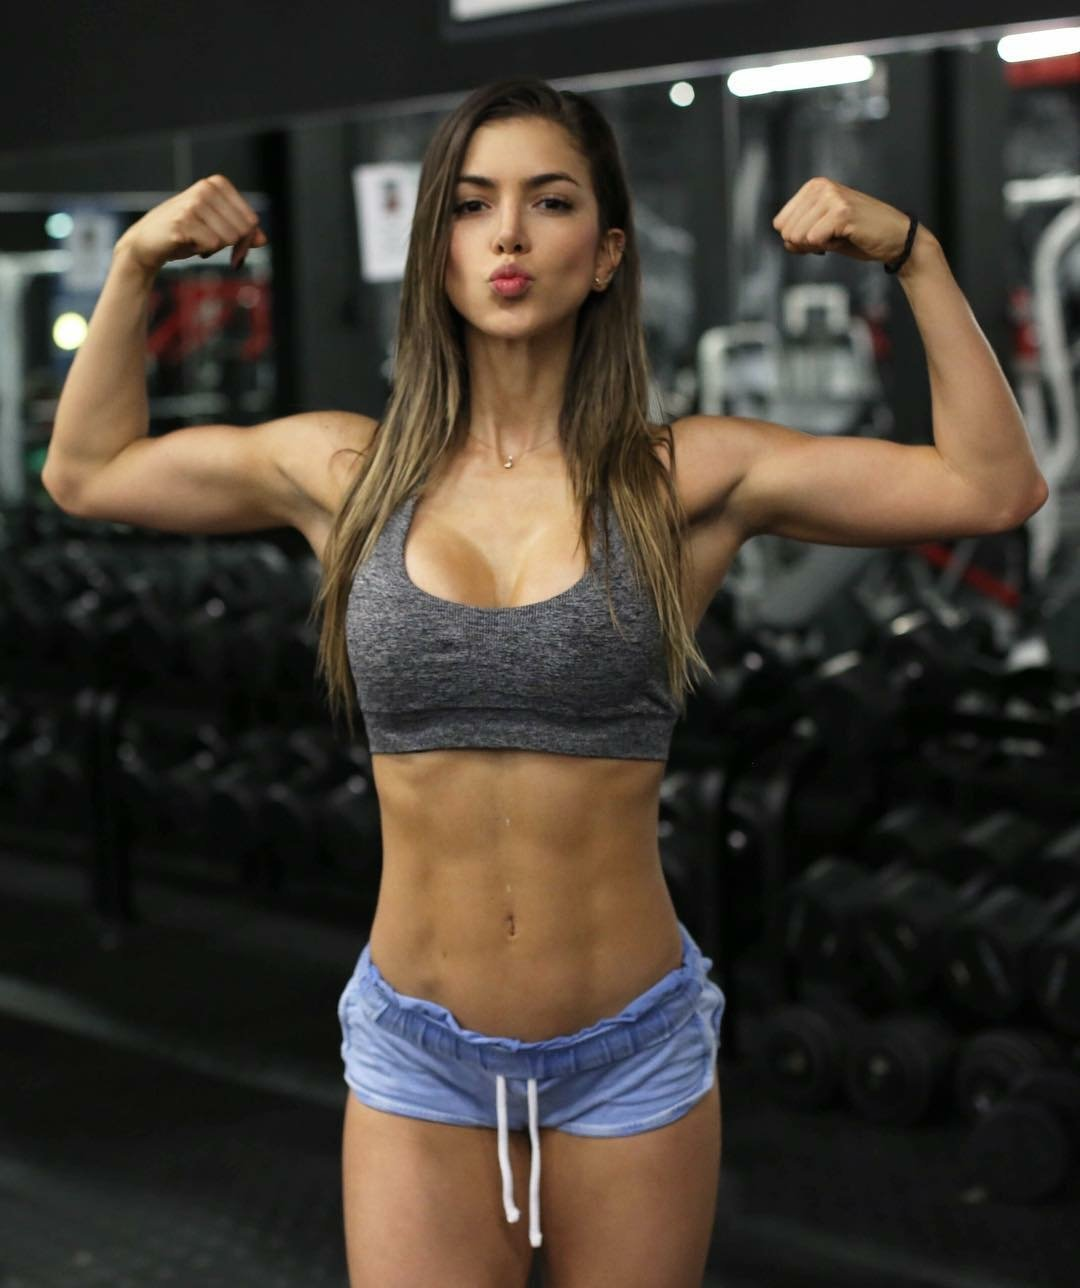 Anllela Sagra Colombian fitness babe muscles hot photos 2017